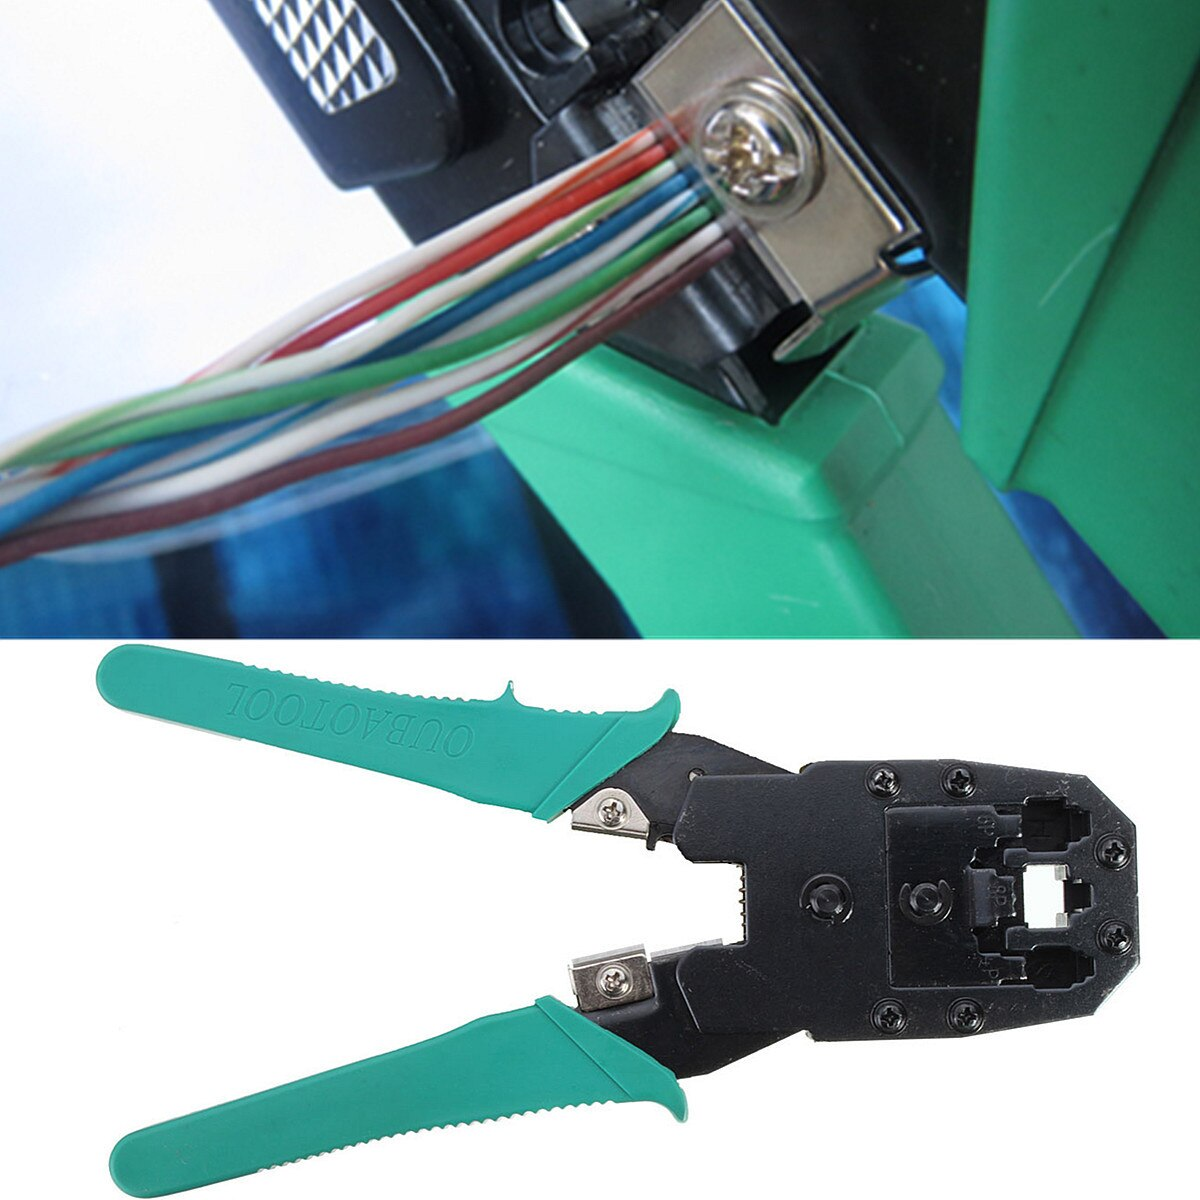 [해외]2Pcs Professional Network Cable Crimper+Wire Stripper For 4/ 6,/8 Poles Modular Connector PC Network Hand Tools Herramientas/2Pcs Professional Net